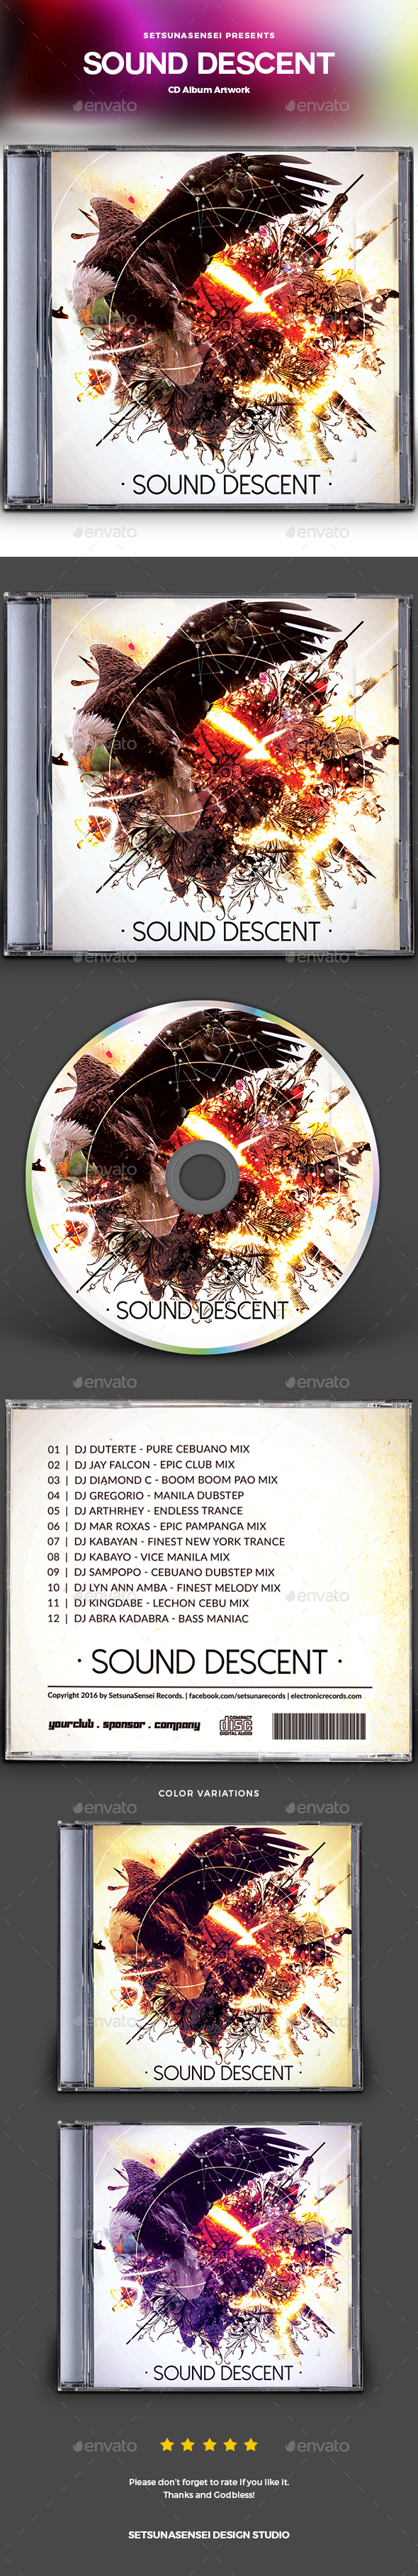 Sound Descent CD Album Artwork - CD & DVD Artwork Print Templates